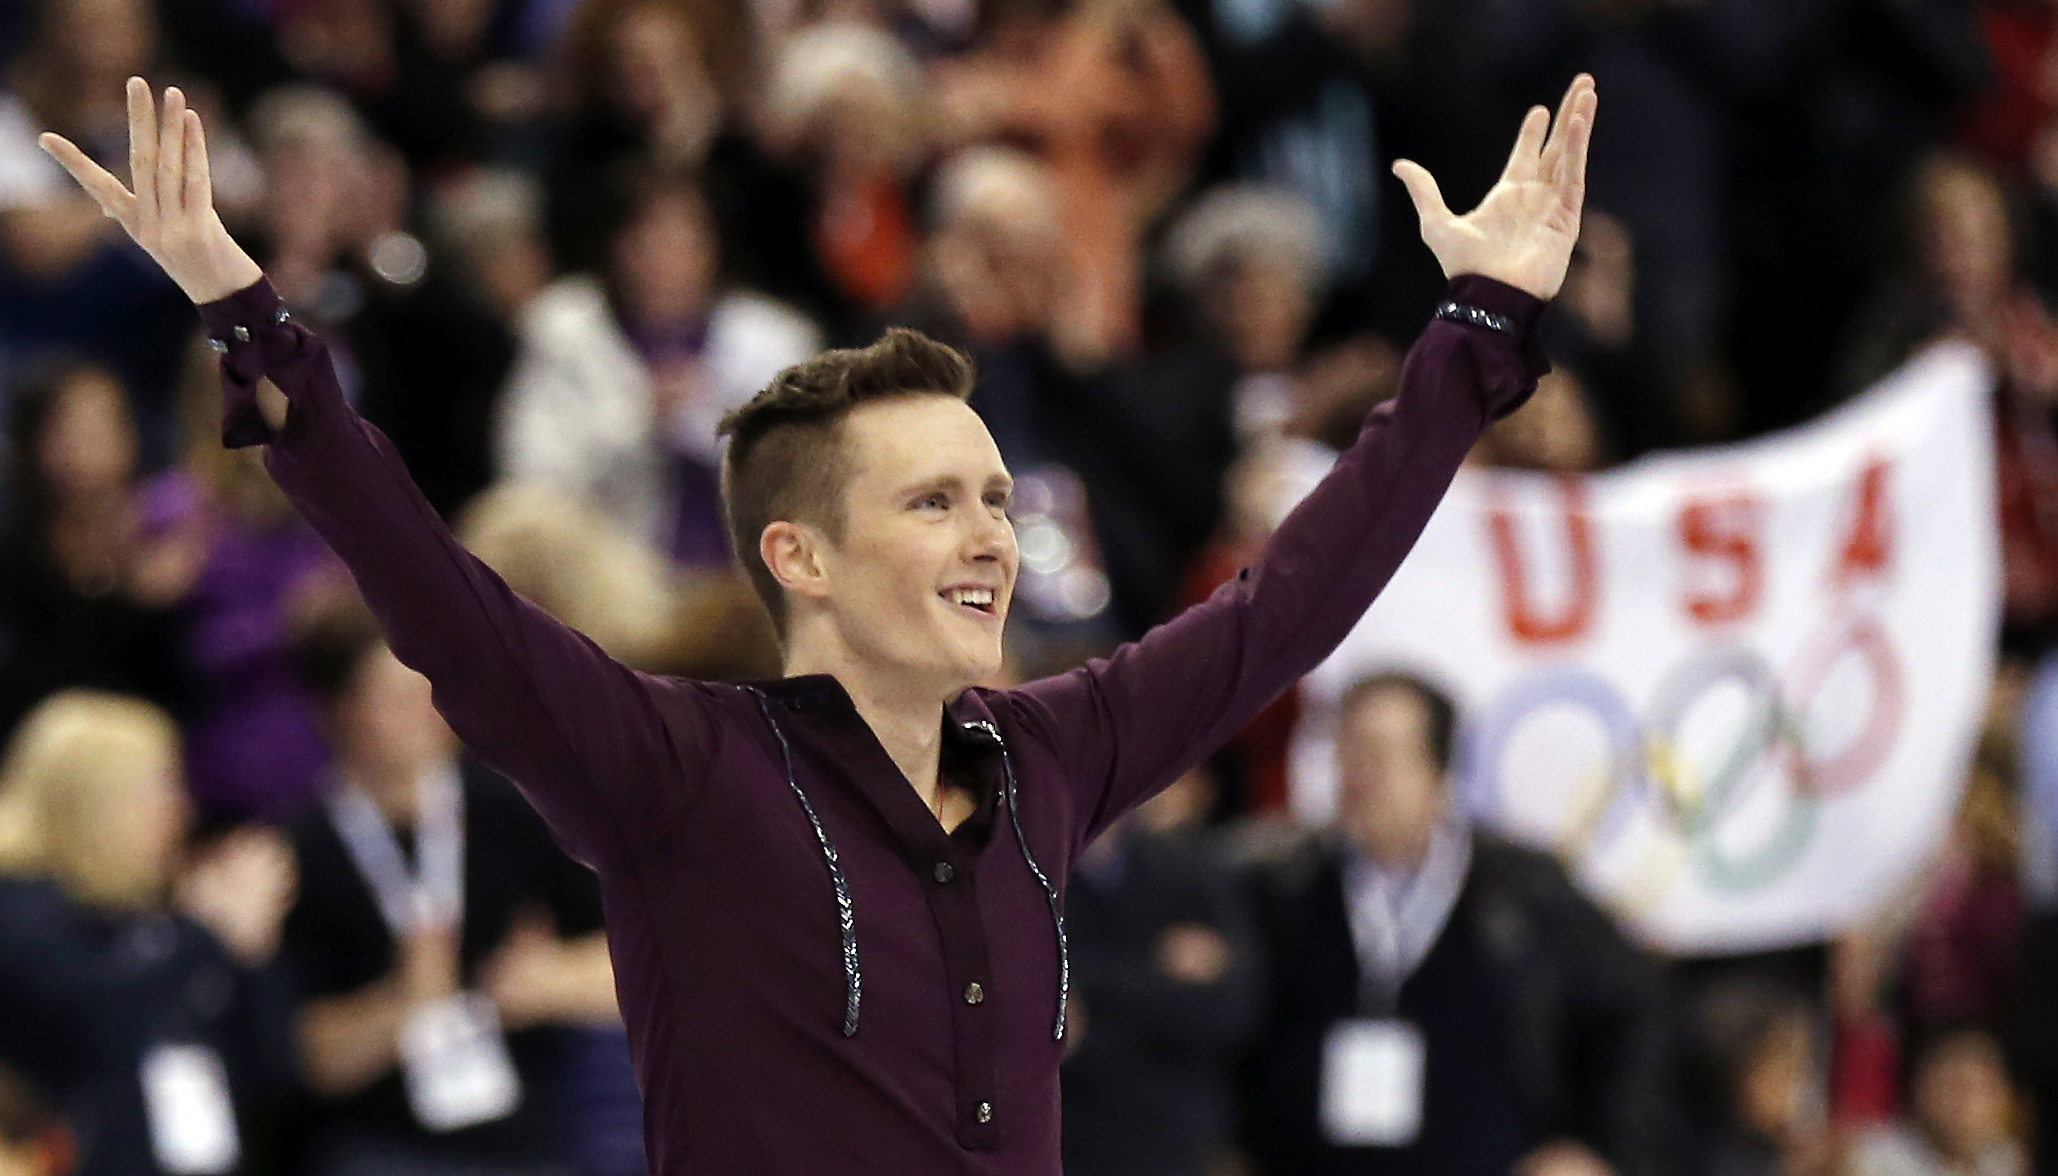 Jan 10, 2014; Boston, MA, USA; Jeremy Abbott celebrates after his performance in the men's short program in the U.S. Figure Skating Championships at TD Garden. (Winslow Townson-USA TODAY Sports)